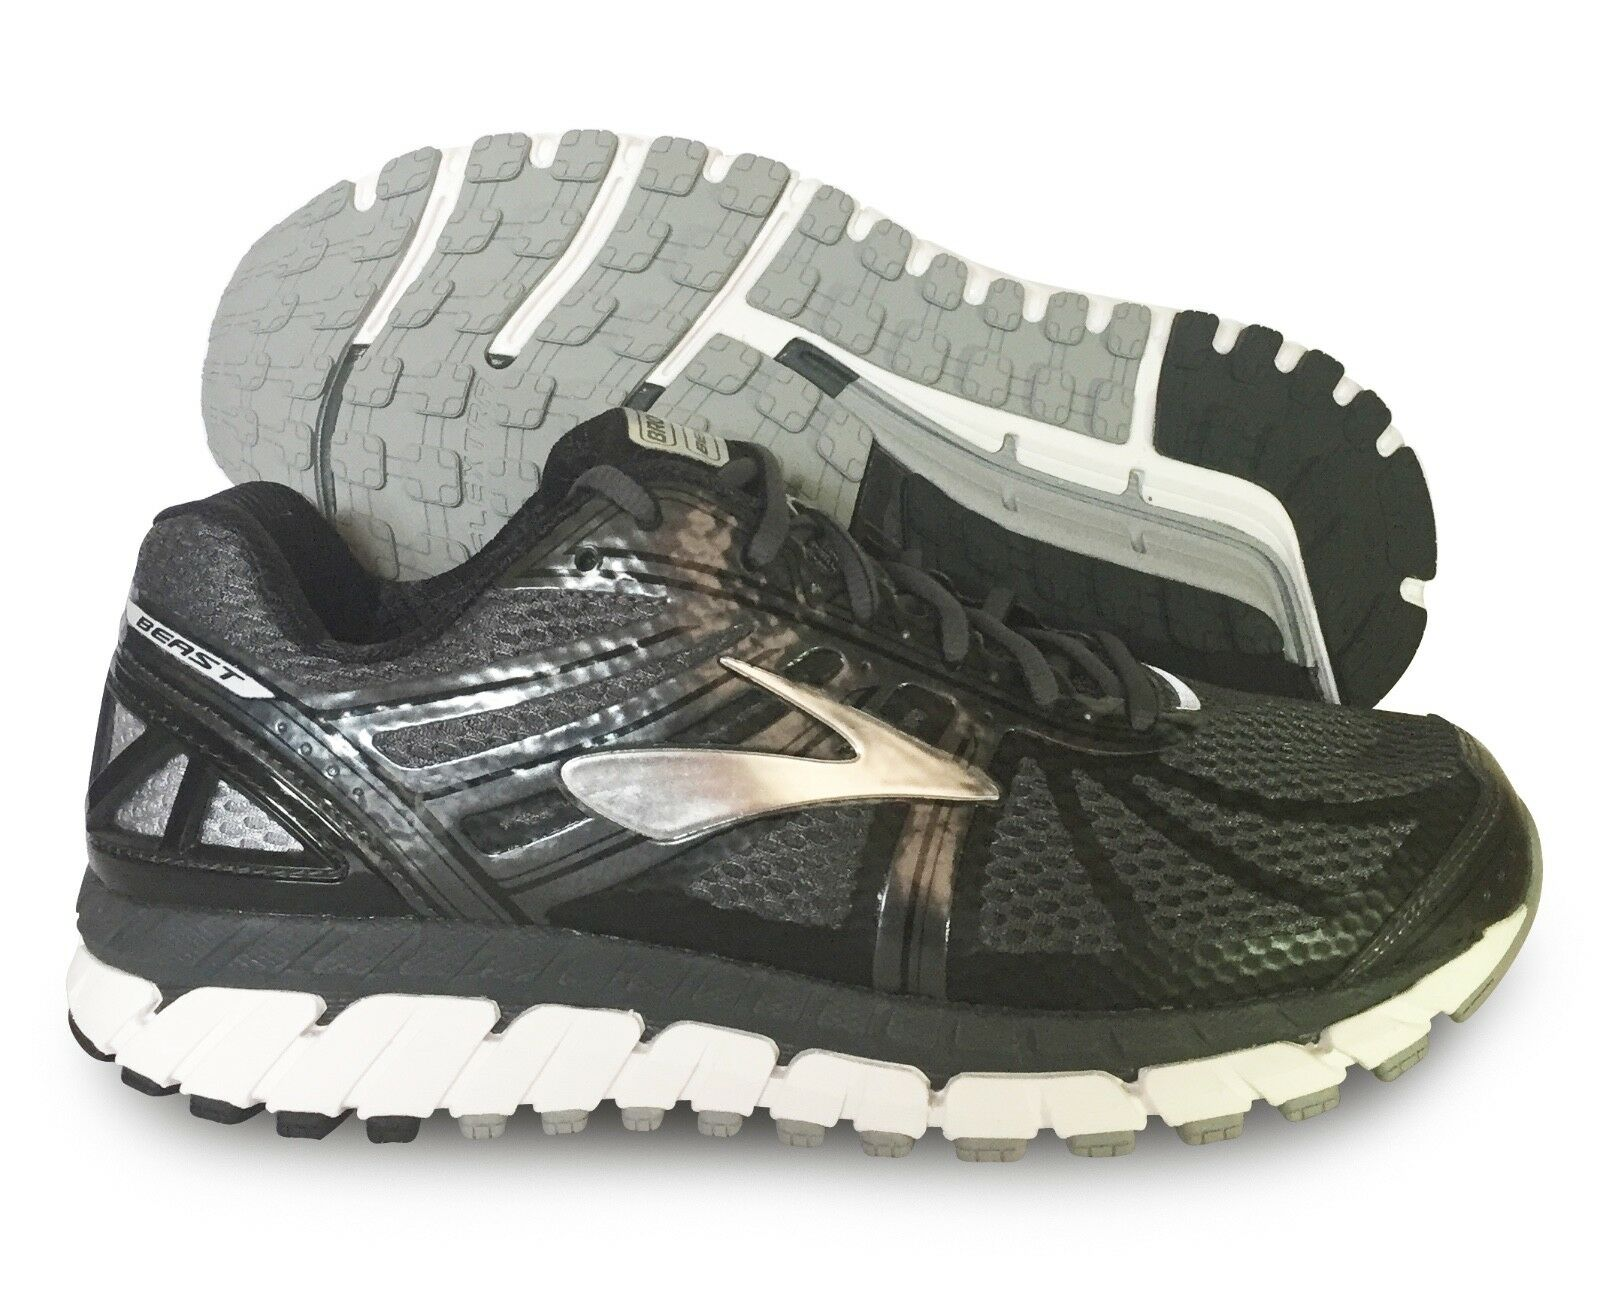 Brooks Beast 16 Homme Chaussure Anthracite Noir Argent Tailles Multiples NEW IN BOX